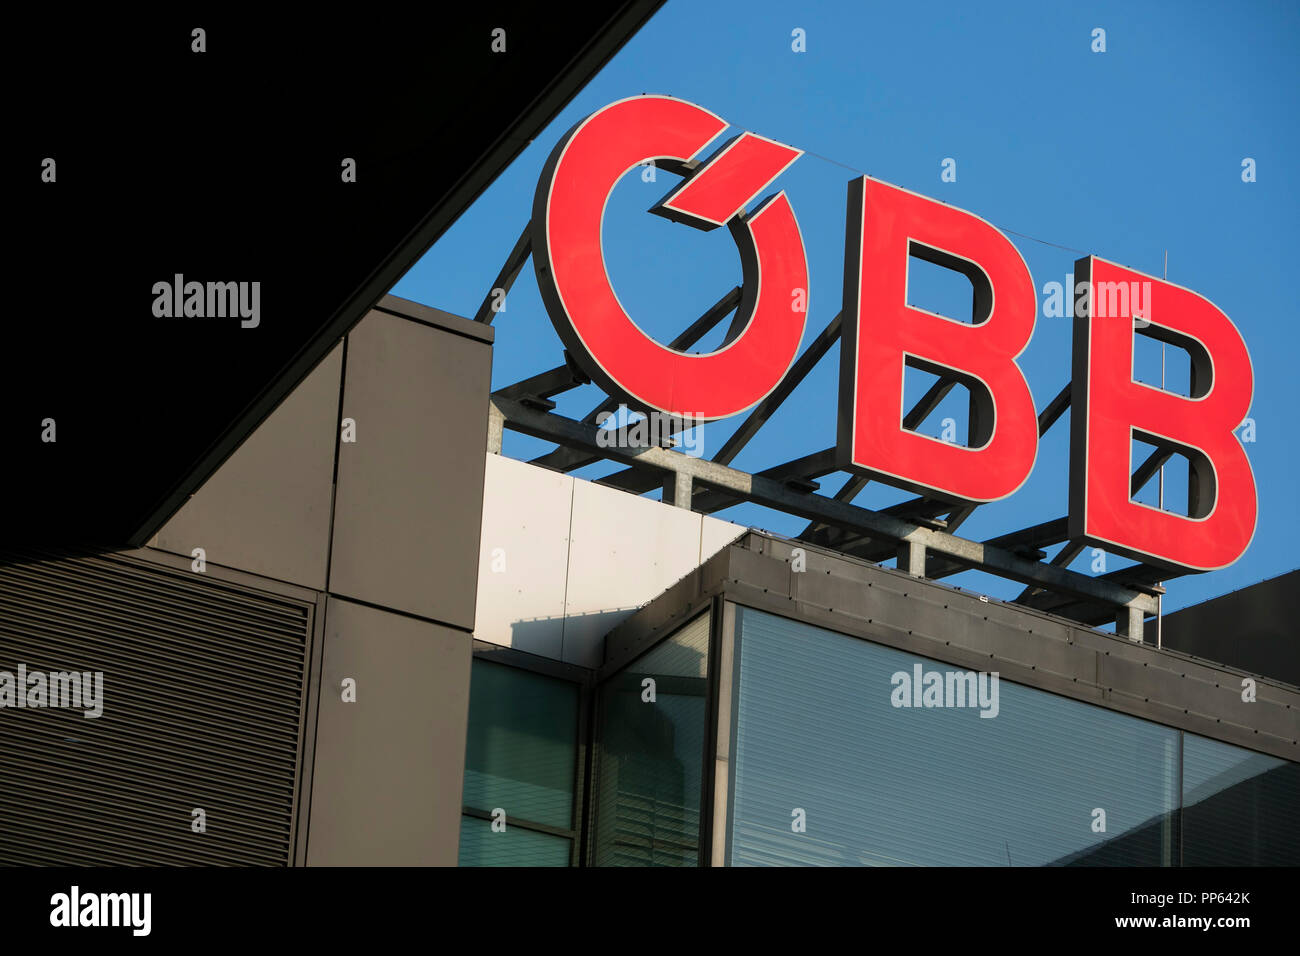 A logo sign outside of a OBB (Austrian Federal Railways) station in Vienna, Austria, on September 5, 2018. - Stock Image